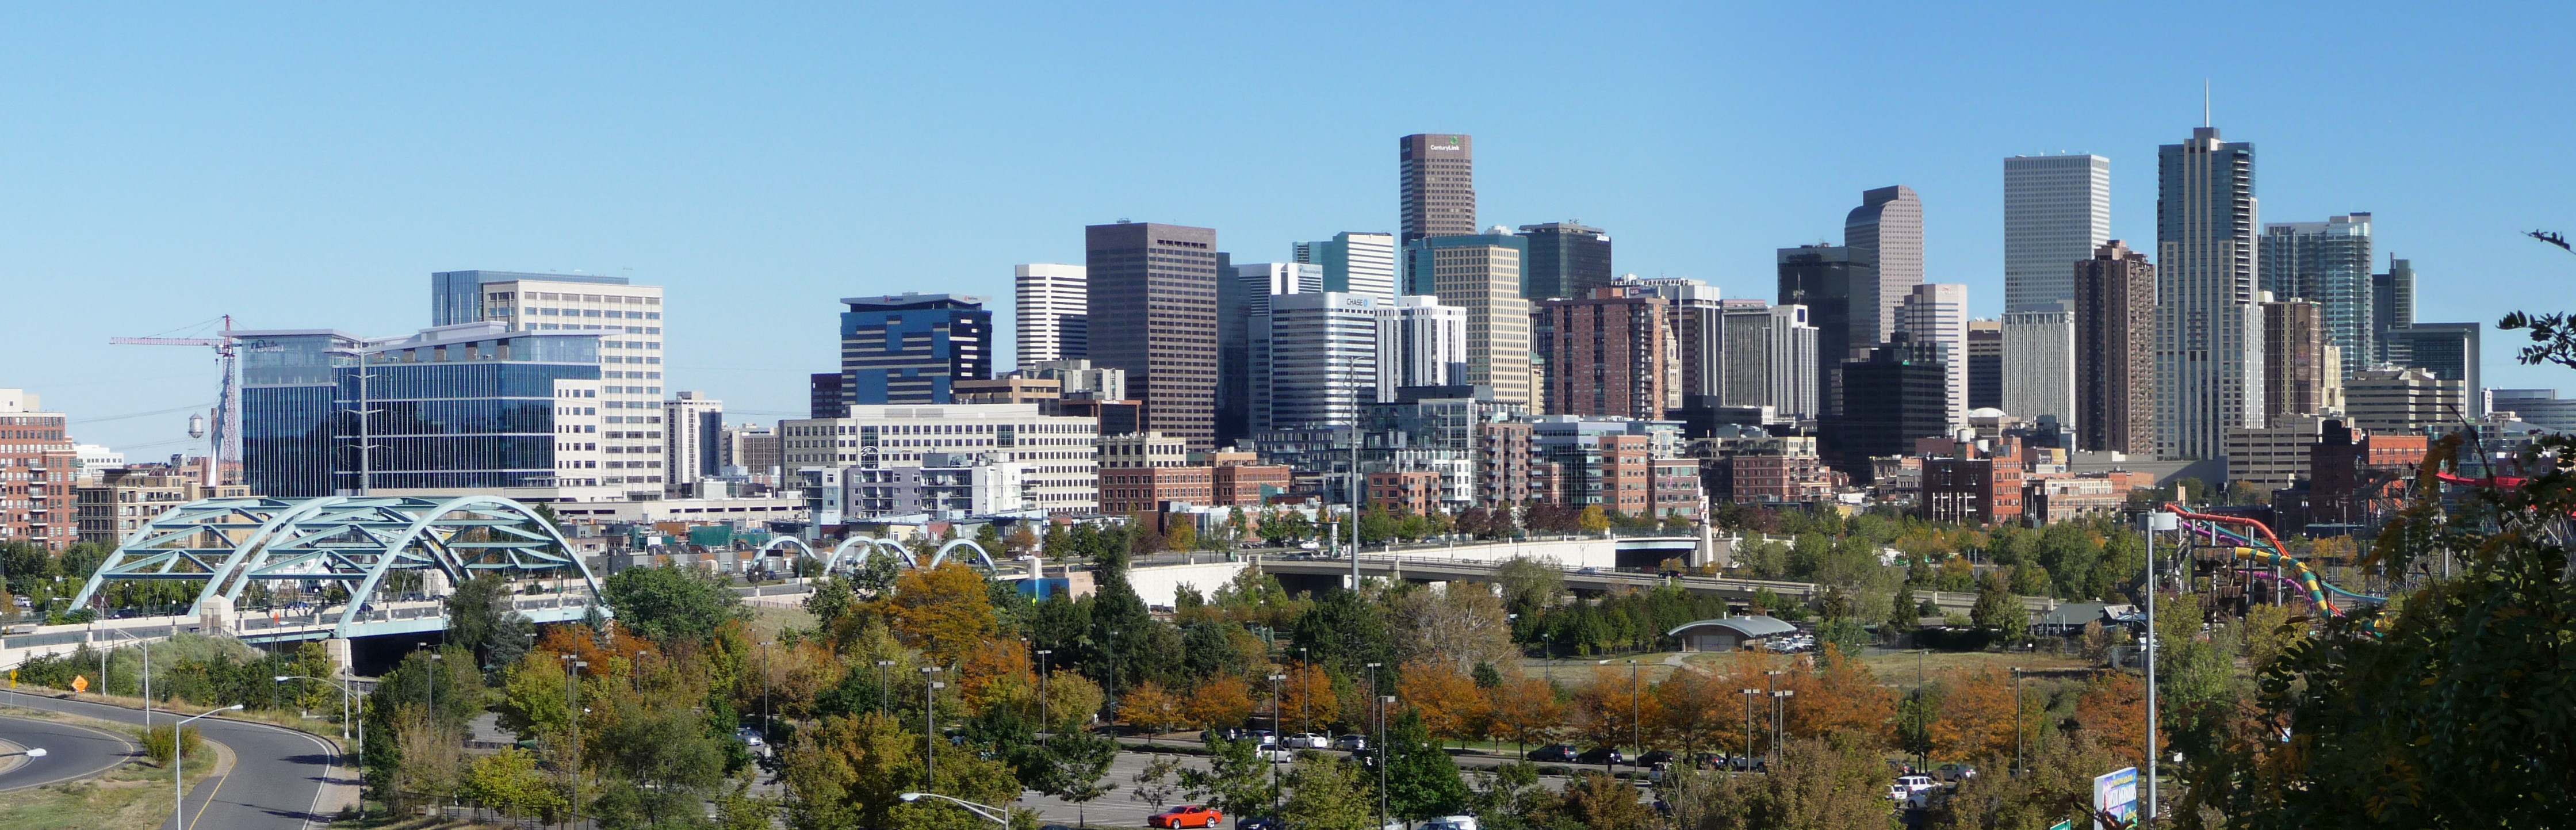 Denver Cityscape Pictures to Pin on Pinterest - PinsDaddy